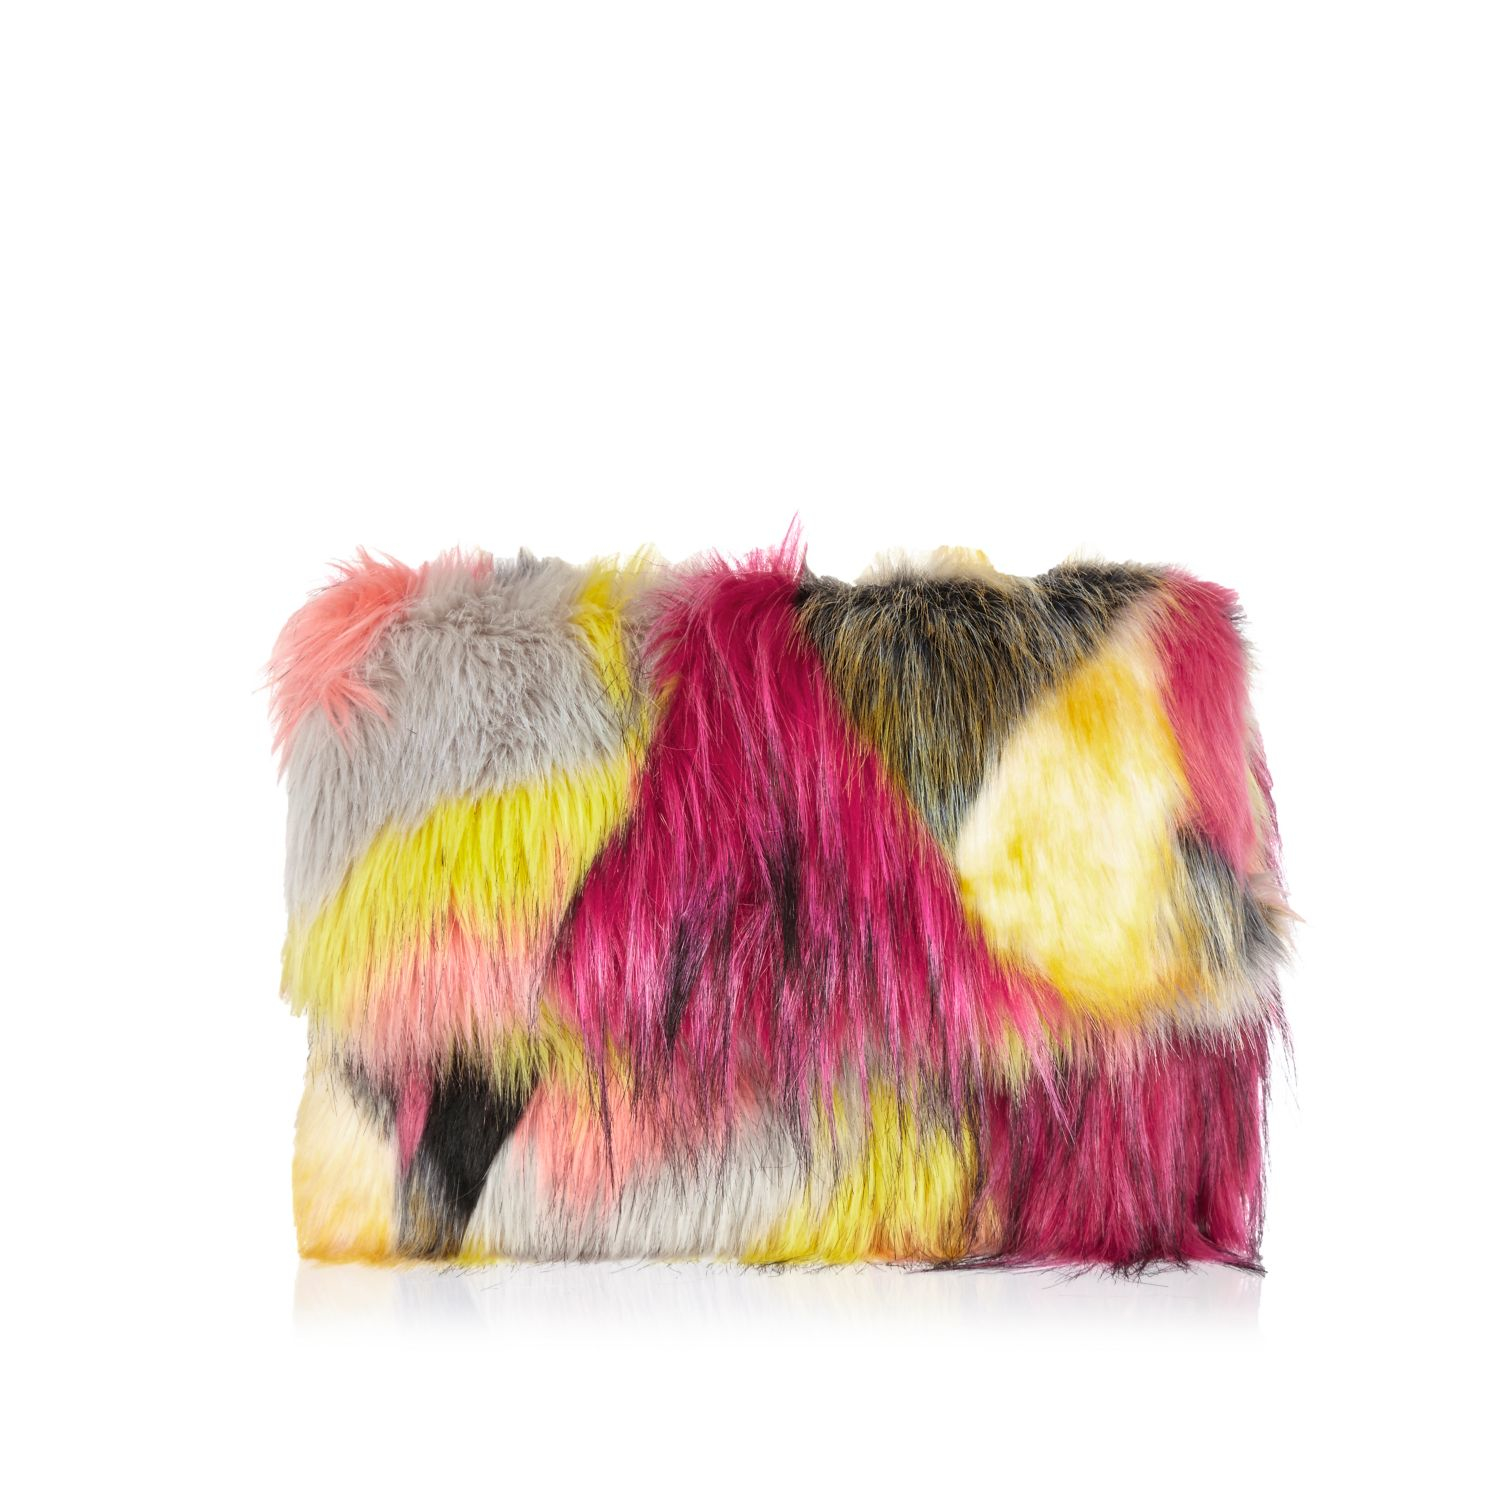 River Island Pink Faux Fur Clutch Bag in Pink - Lyst 2461004cac